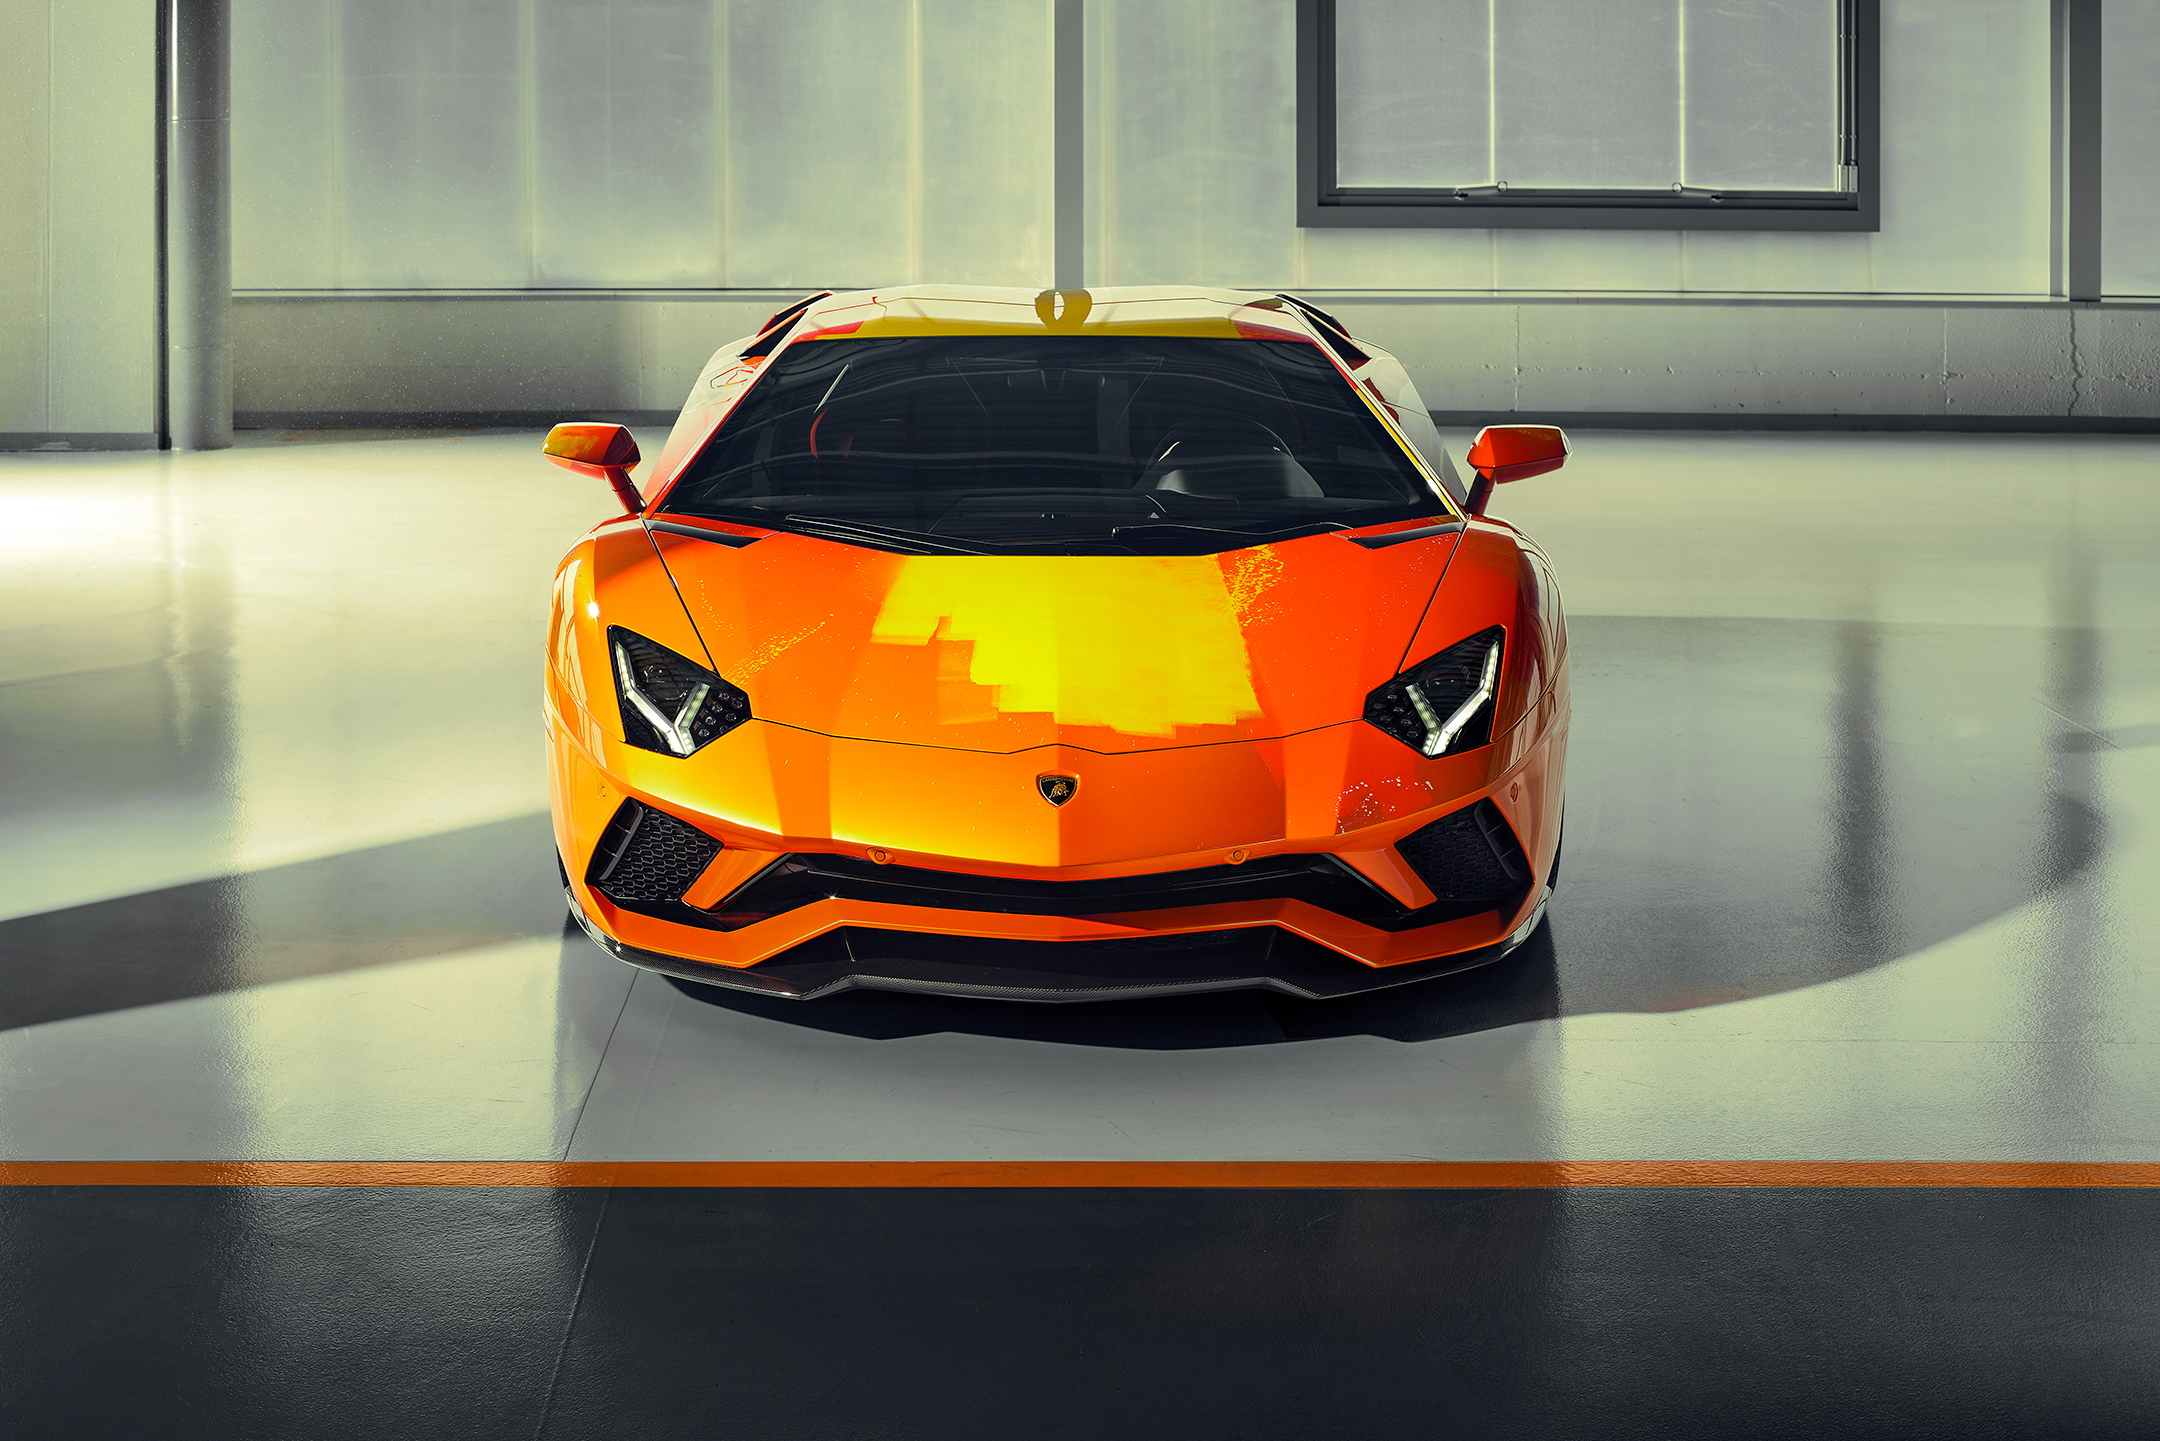 Lamborghini one-off Aventador S by Skyler Grey Art - 2019 - front-face / face avant